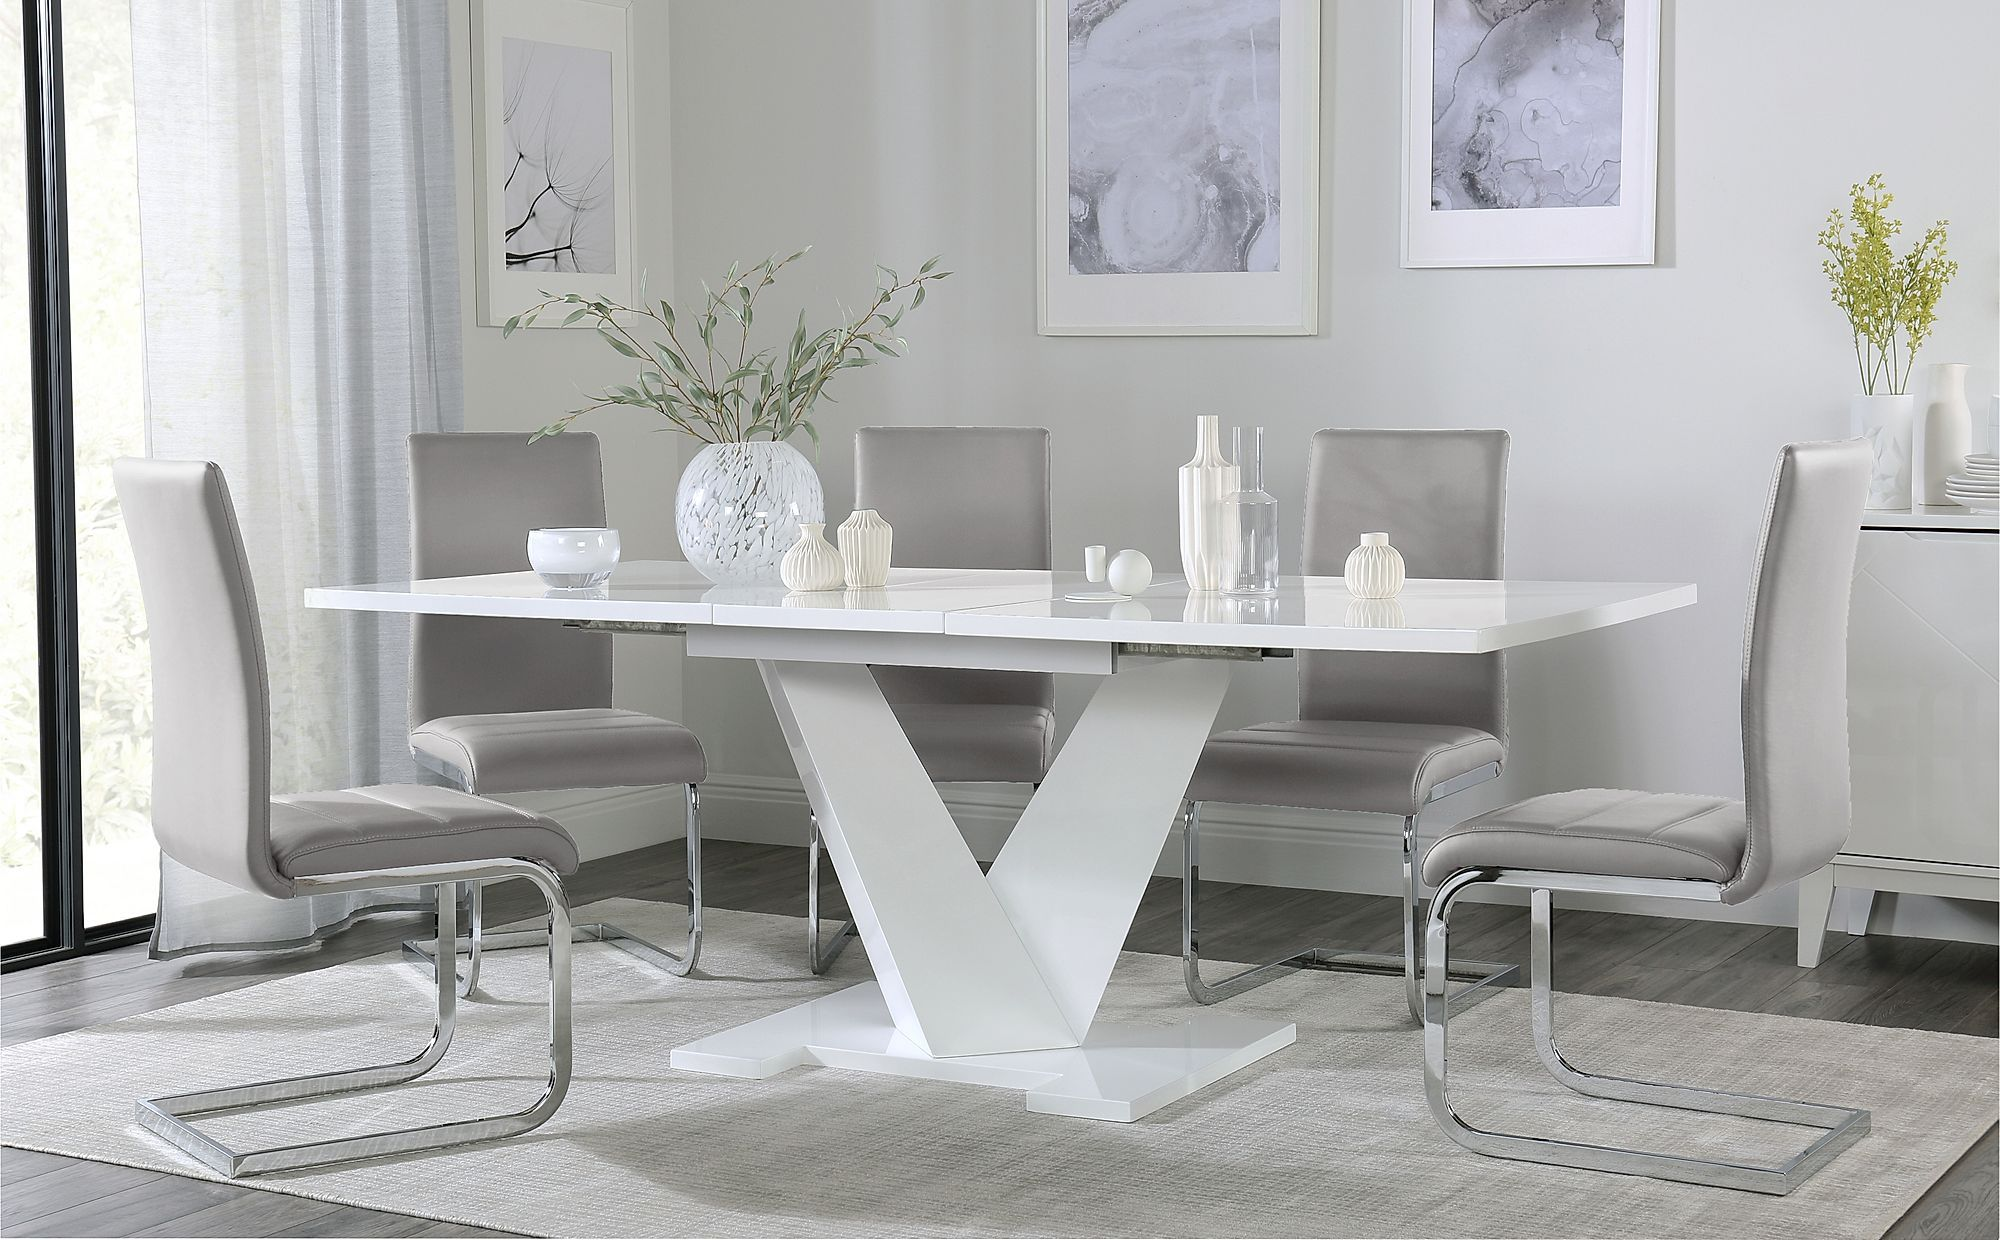 Turin White High Gloss Extending Dining Table With 6 Perth Light Grey Leather Chairs Furniture Cho White Dining Table White Dining Chairs White Leather Chair